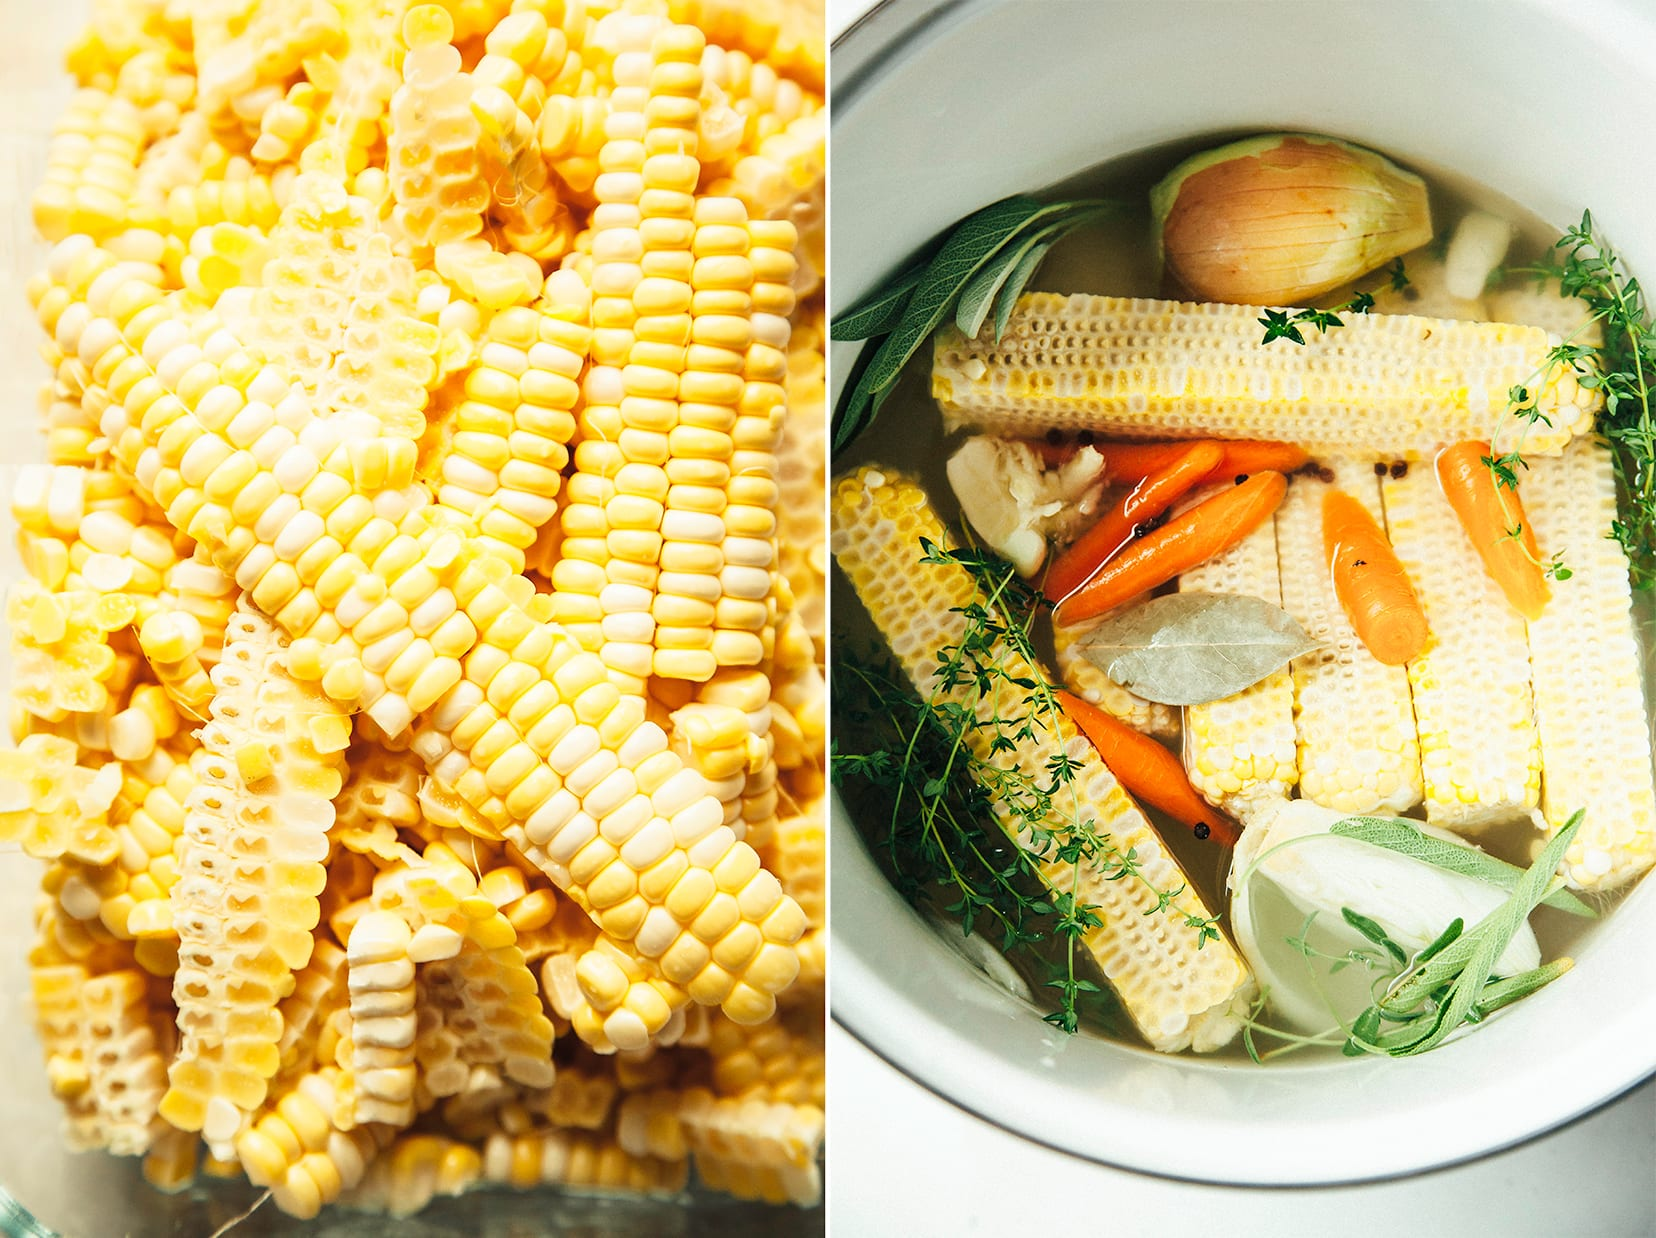 2 photos: one of fresh corn kernels up close, and one overhead shot of some vegetable stock being made in a white stock pot.